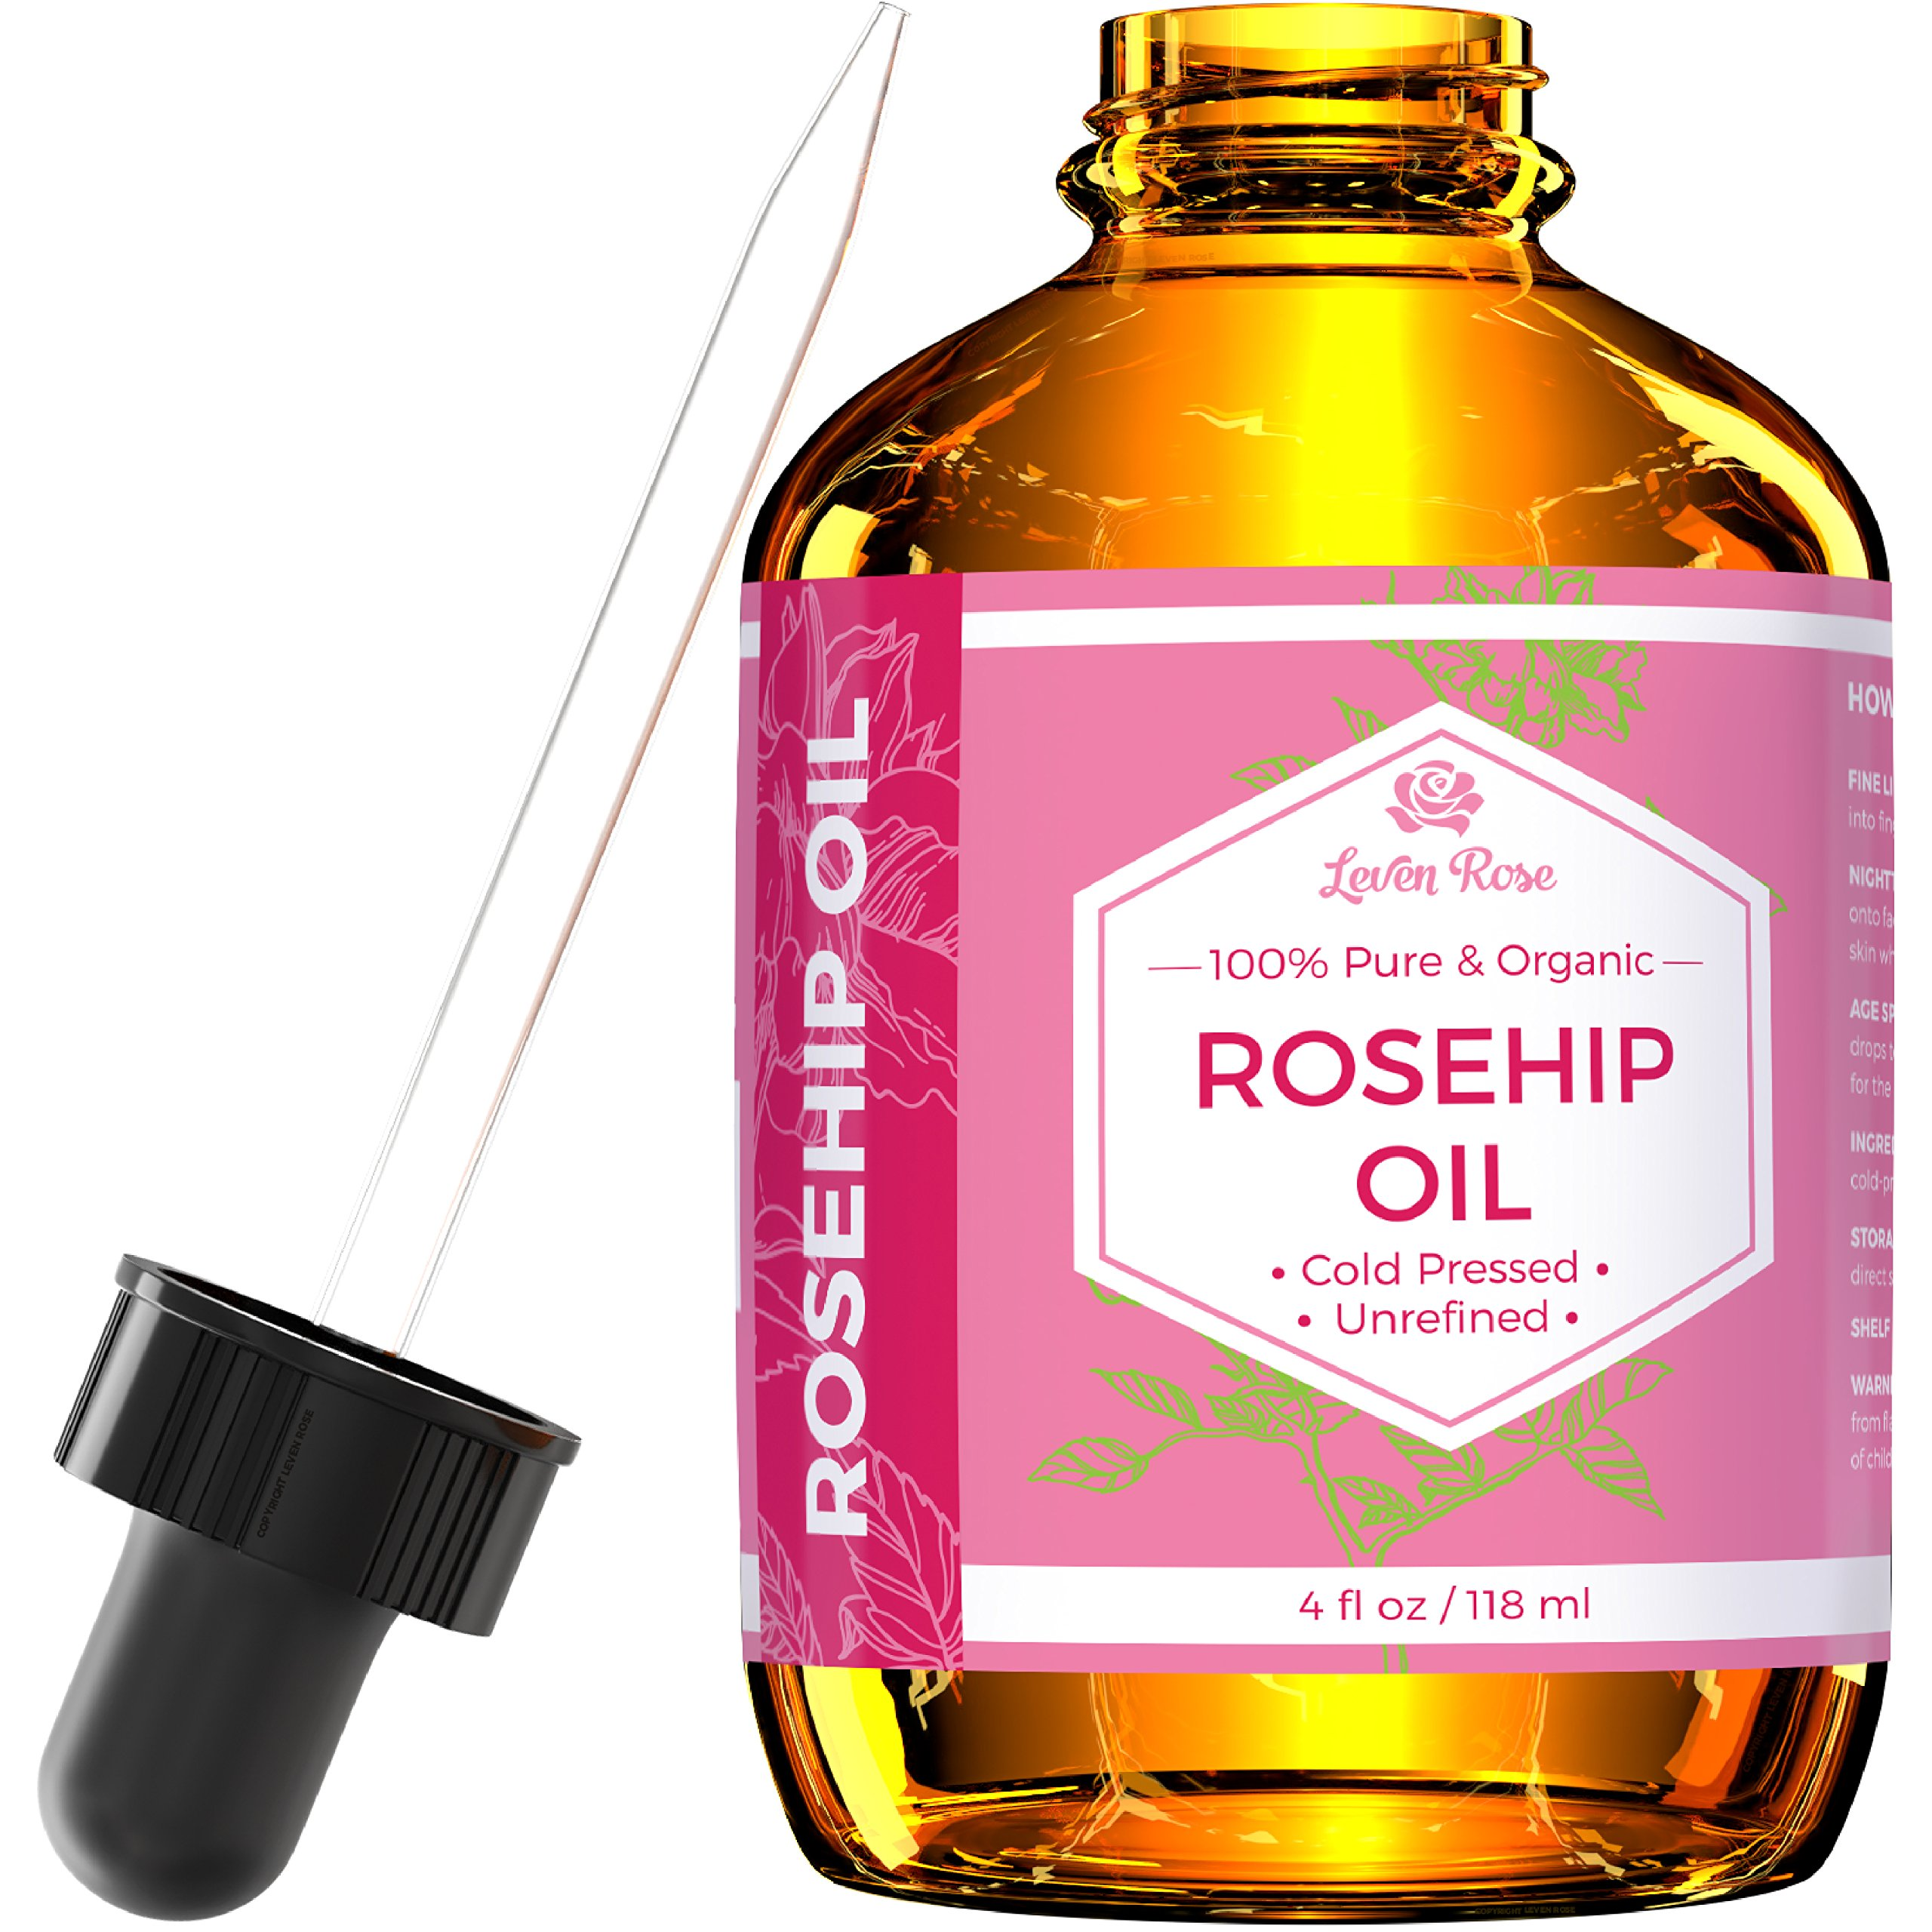 Rosehip Seed Oil by Leven Rose, 100% Pure Organic Unrefined Cold Pressed Anti Aging Rose Hip Moisturizer for Hair Skin & Nails, 4 Fl. Oz by Leven Rose